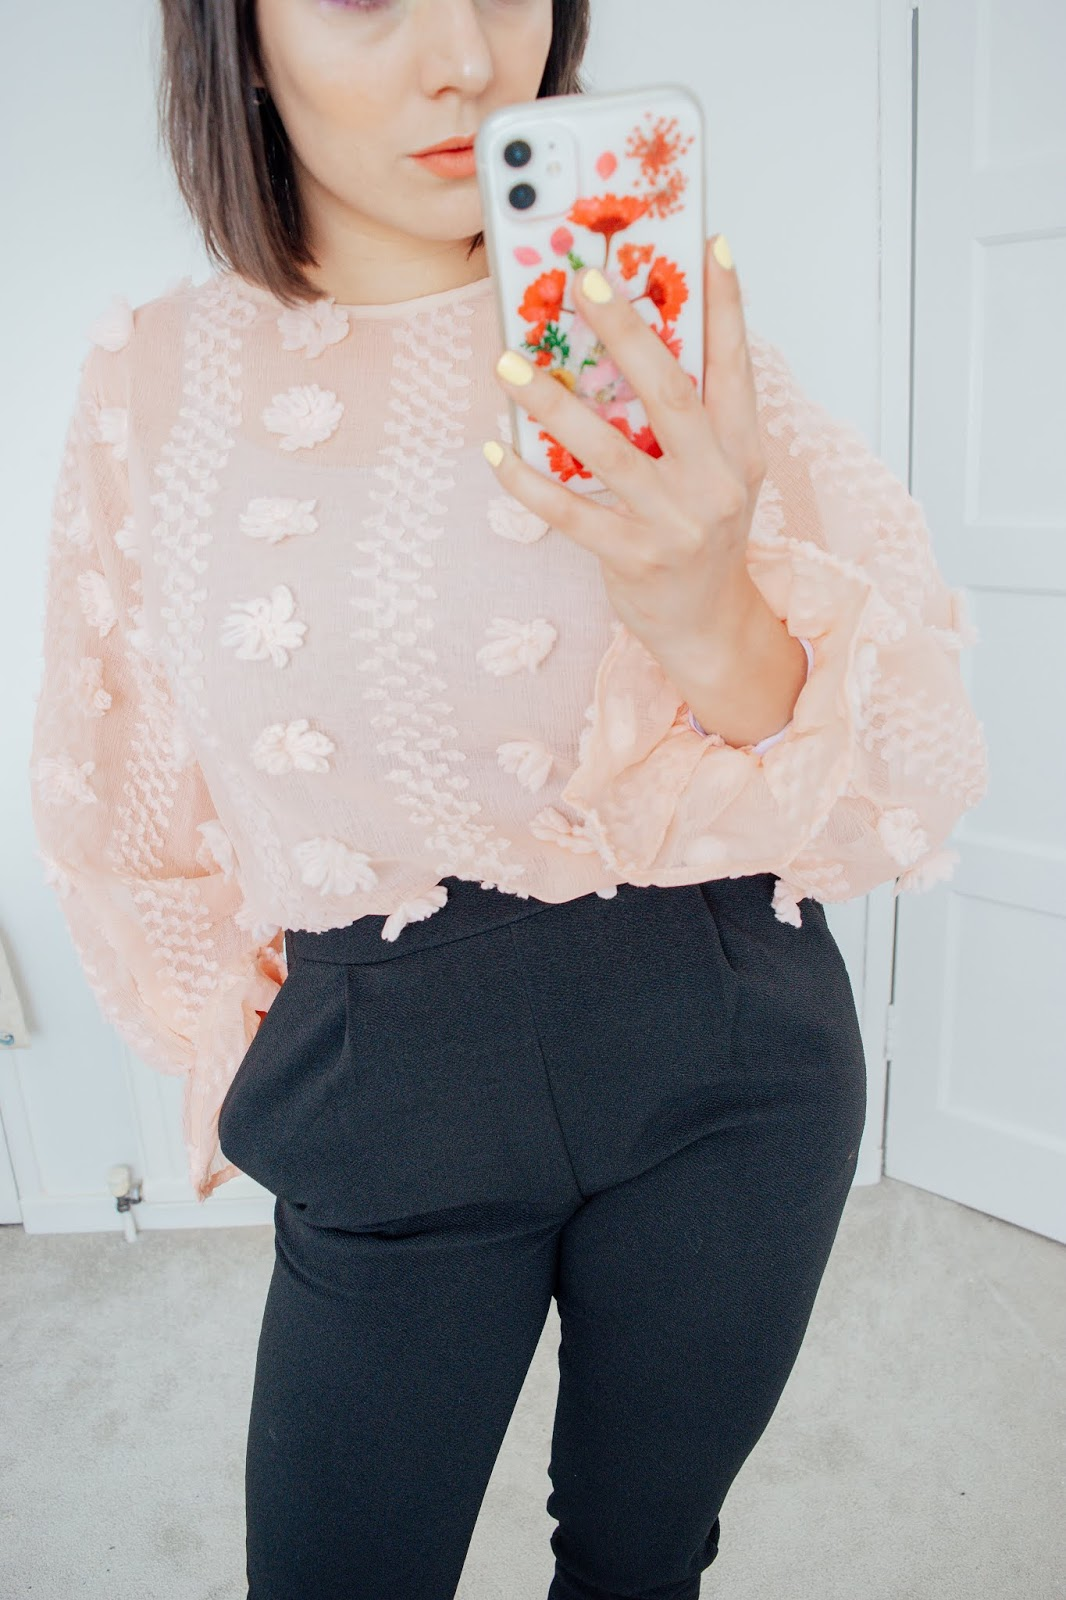 Person holding a phone wearing a pink blouse and black trousers.